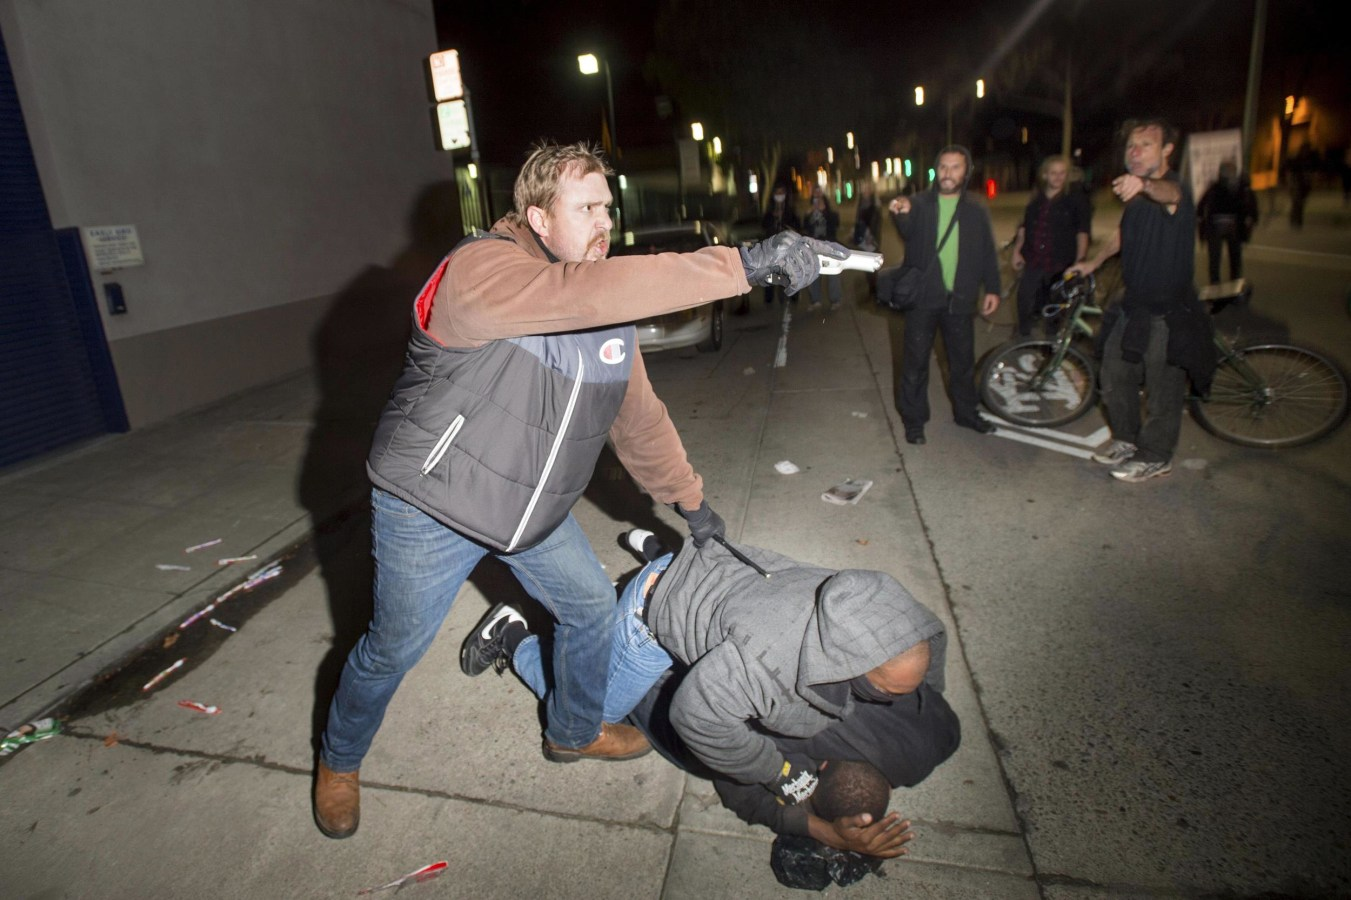 Image: An undercover police officer, who had been marching with anti-police demonstrators, aims his gun at protesters after some in the crowd attacked him and his partner in Oakland